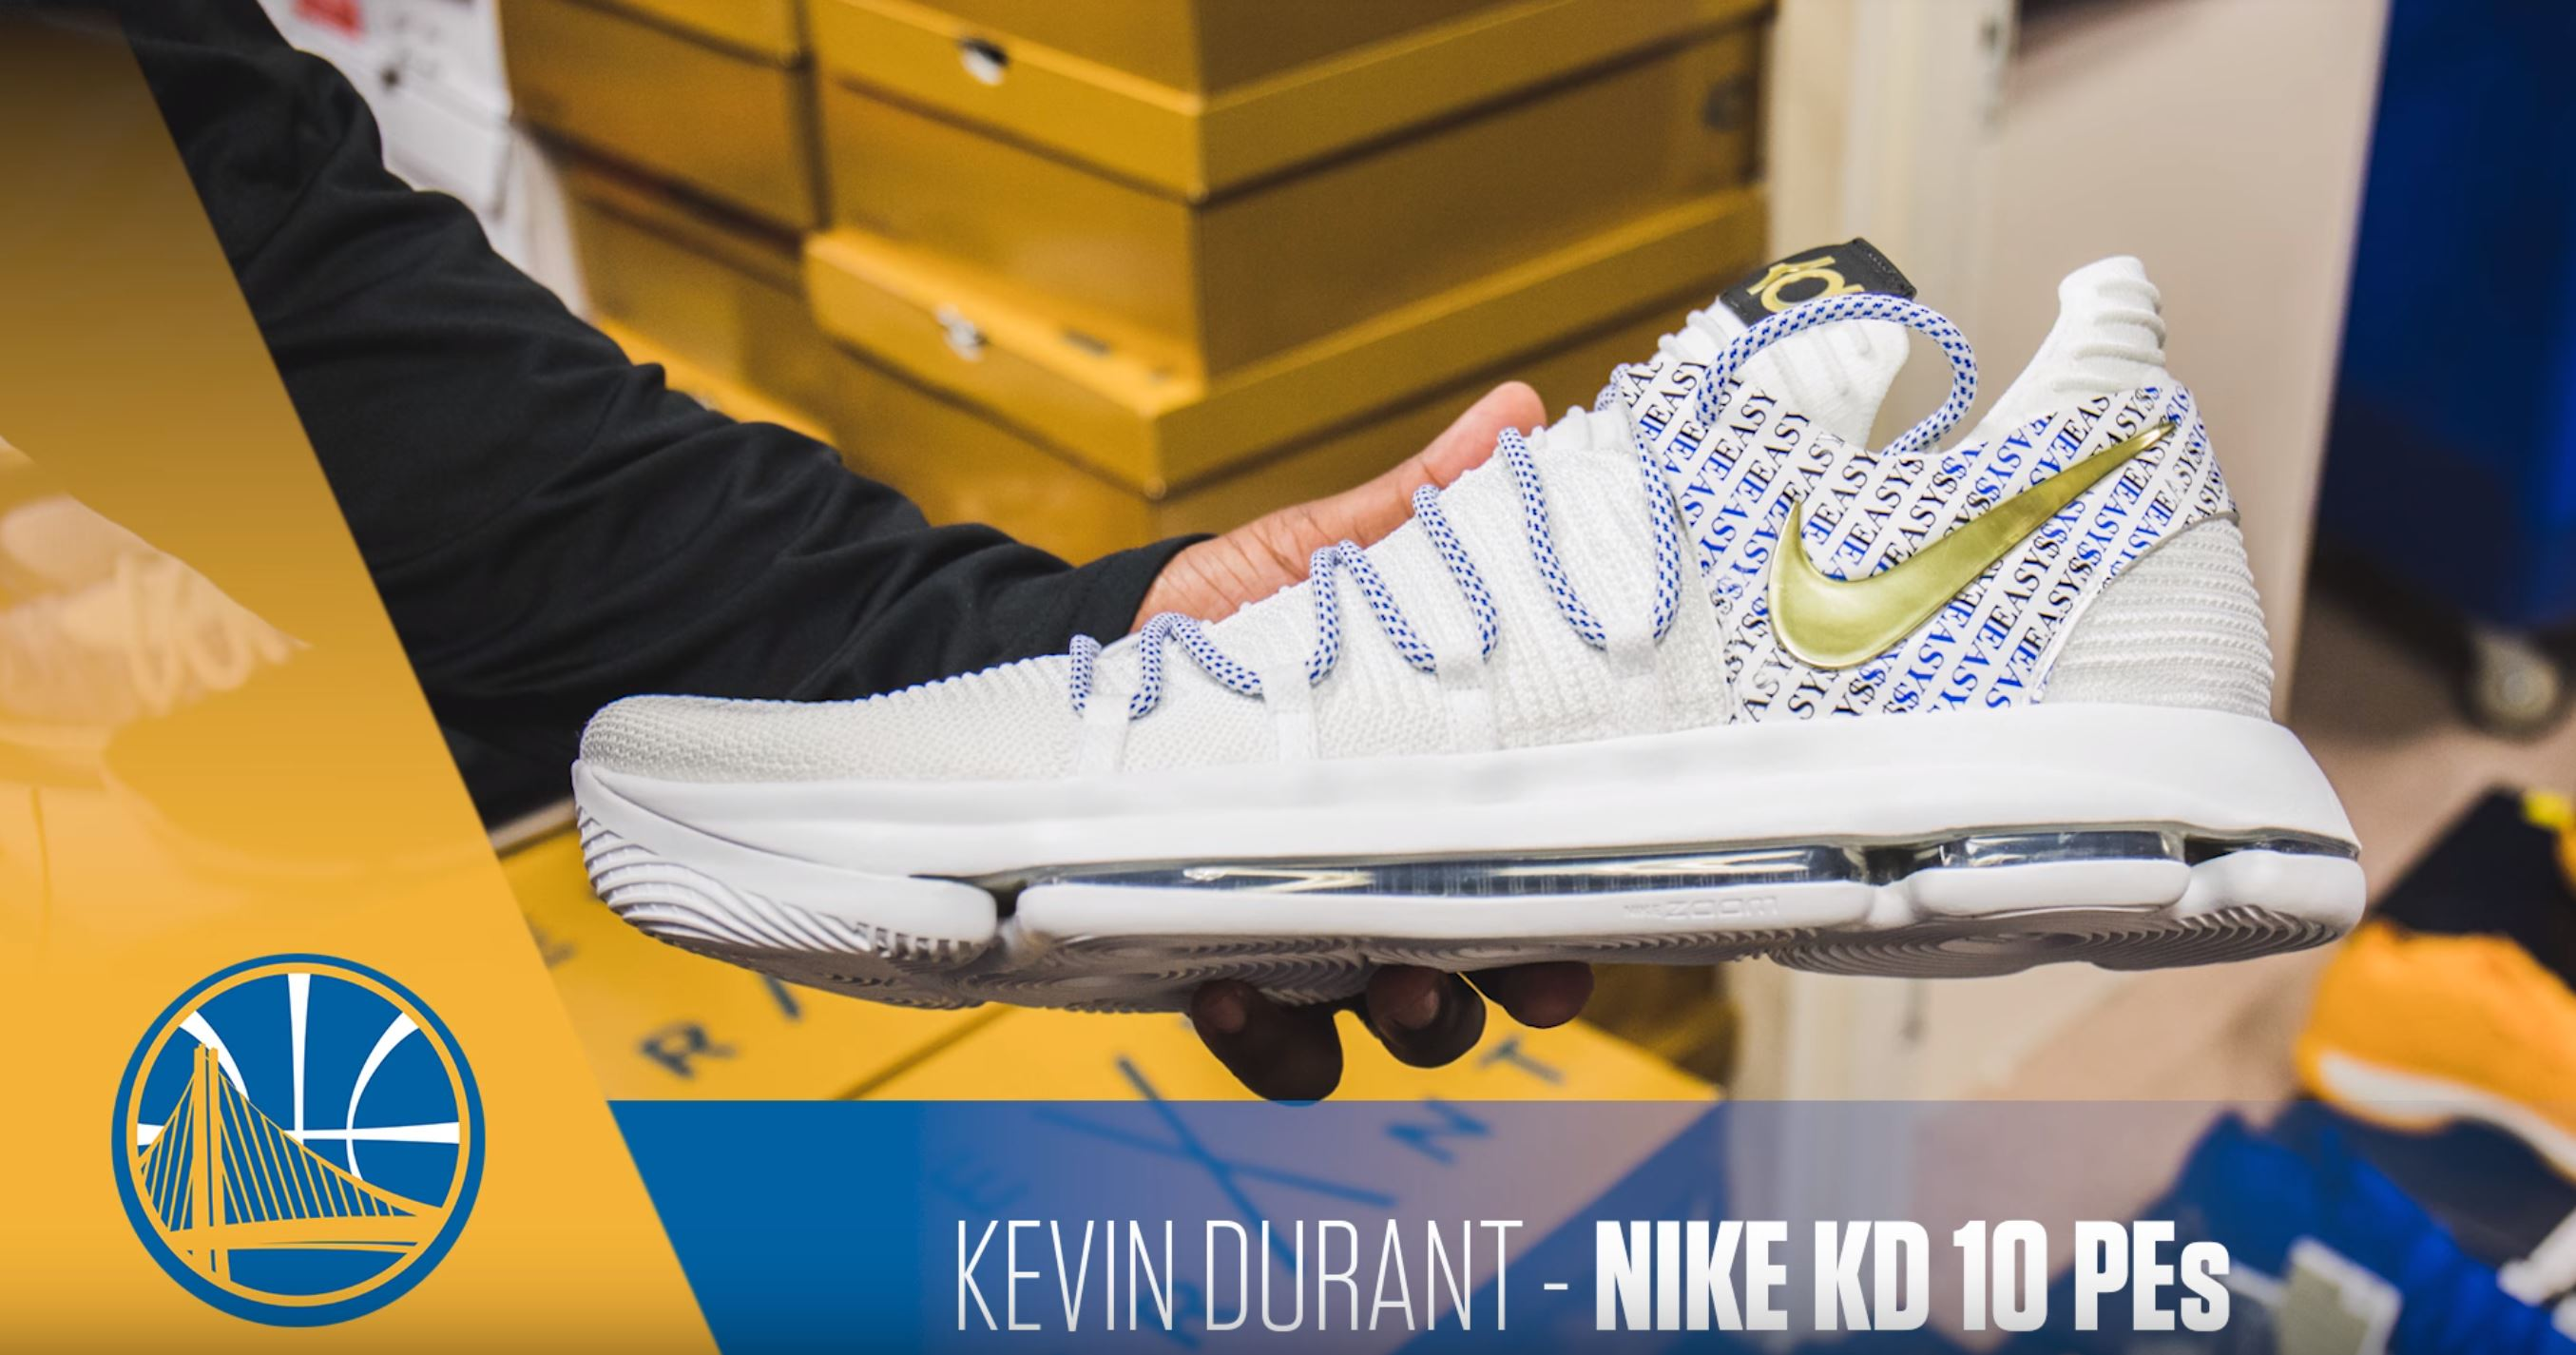 kevin durant nike kd 10 easy PE